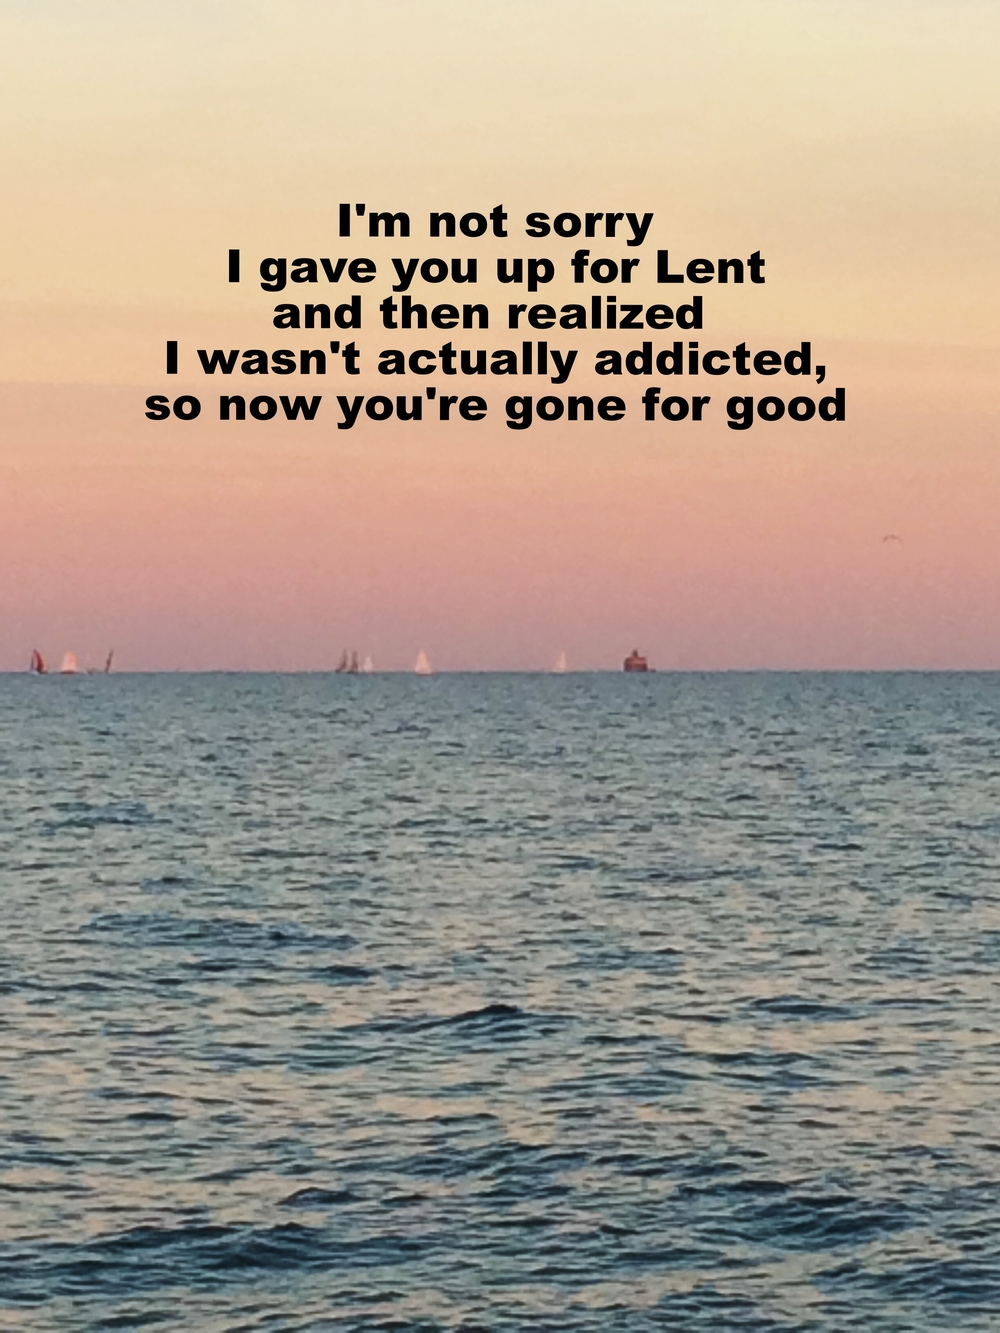 "Anonymous March 2 2016 Image of a peaceful lake with several sailboats in the distance at sundown. The sky has gradations of violet, pink, and orange.  ""I'm not sorry I gave you up for Lent and then realized I wasn't actually addicted, so now you're gone for good"" is overlaid."